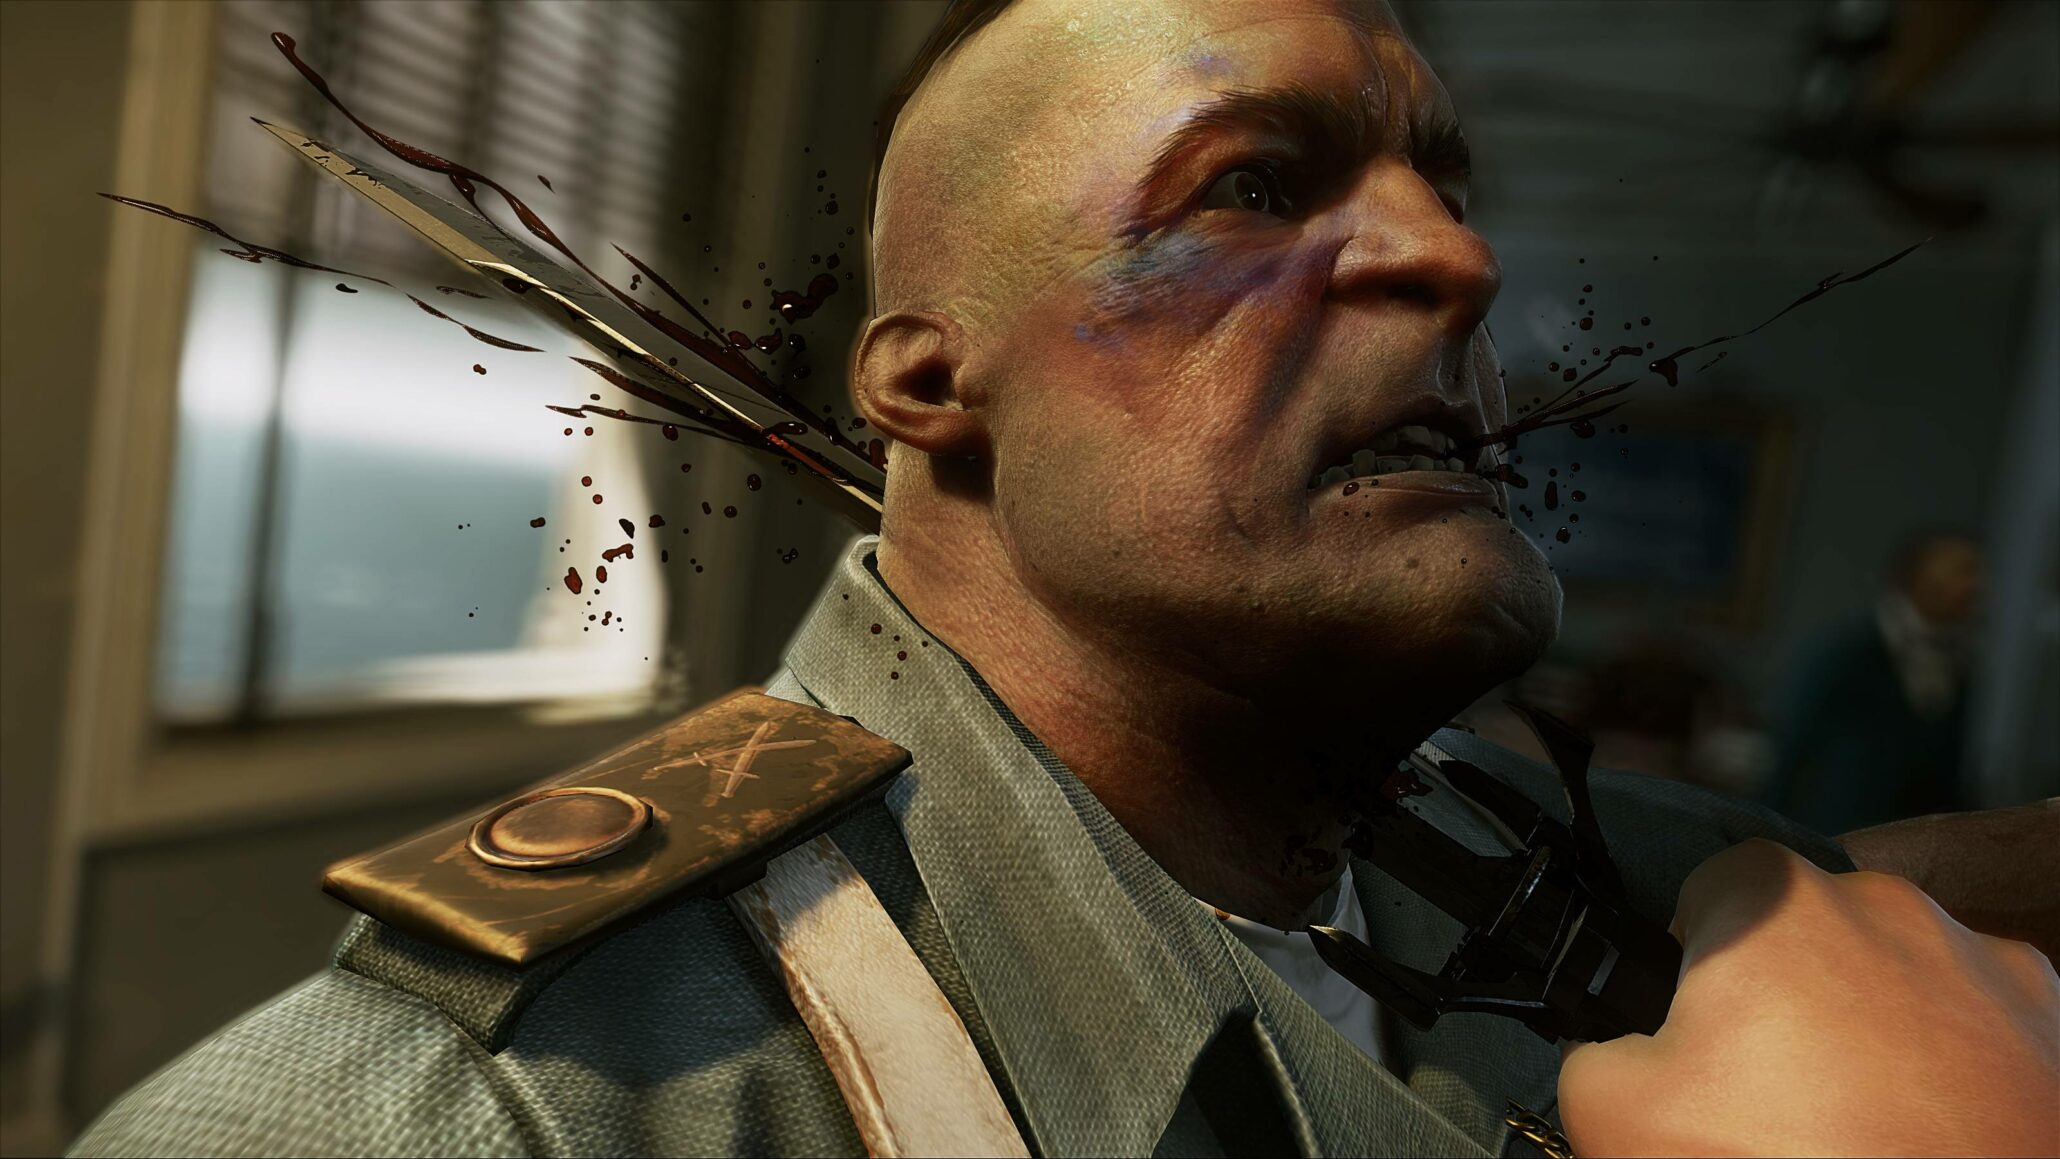 Early Dishonored 2 PC Impressions Report Troubling Performance for AMD